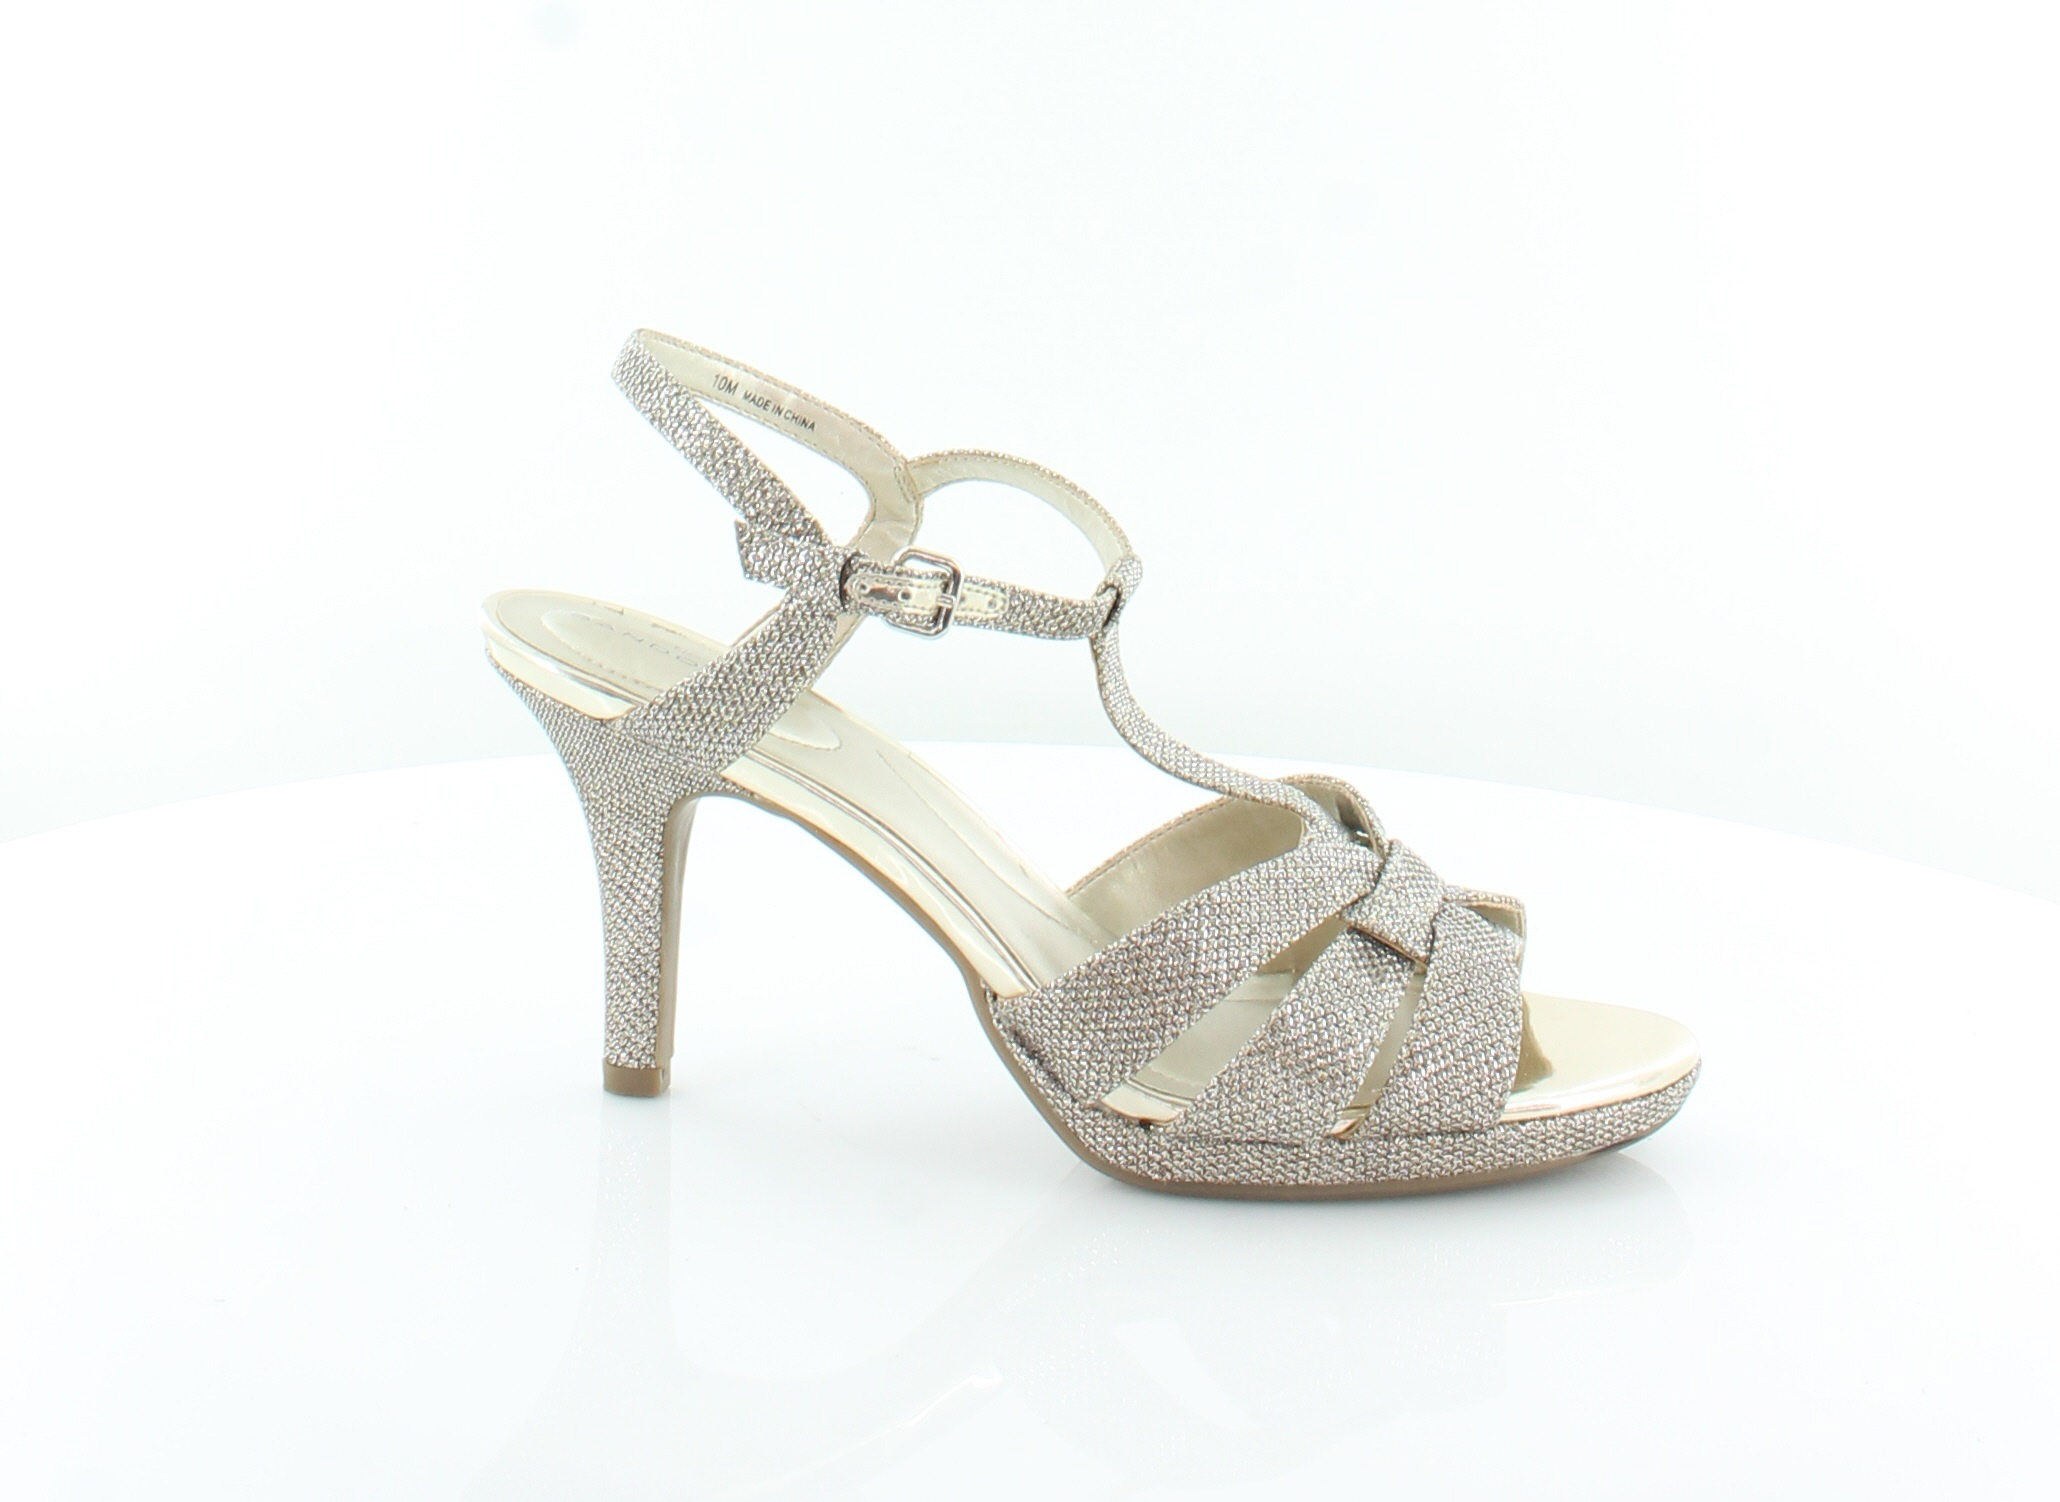 d6a38a413e Bandolino New Sarahi Gold Womens Shoes Size 10 M Sandals MSRP $69 ...